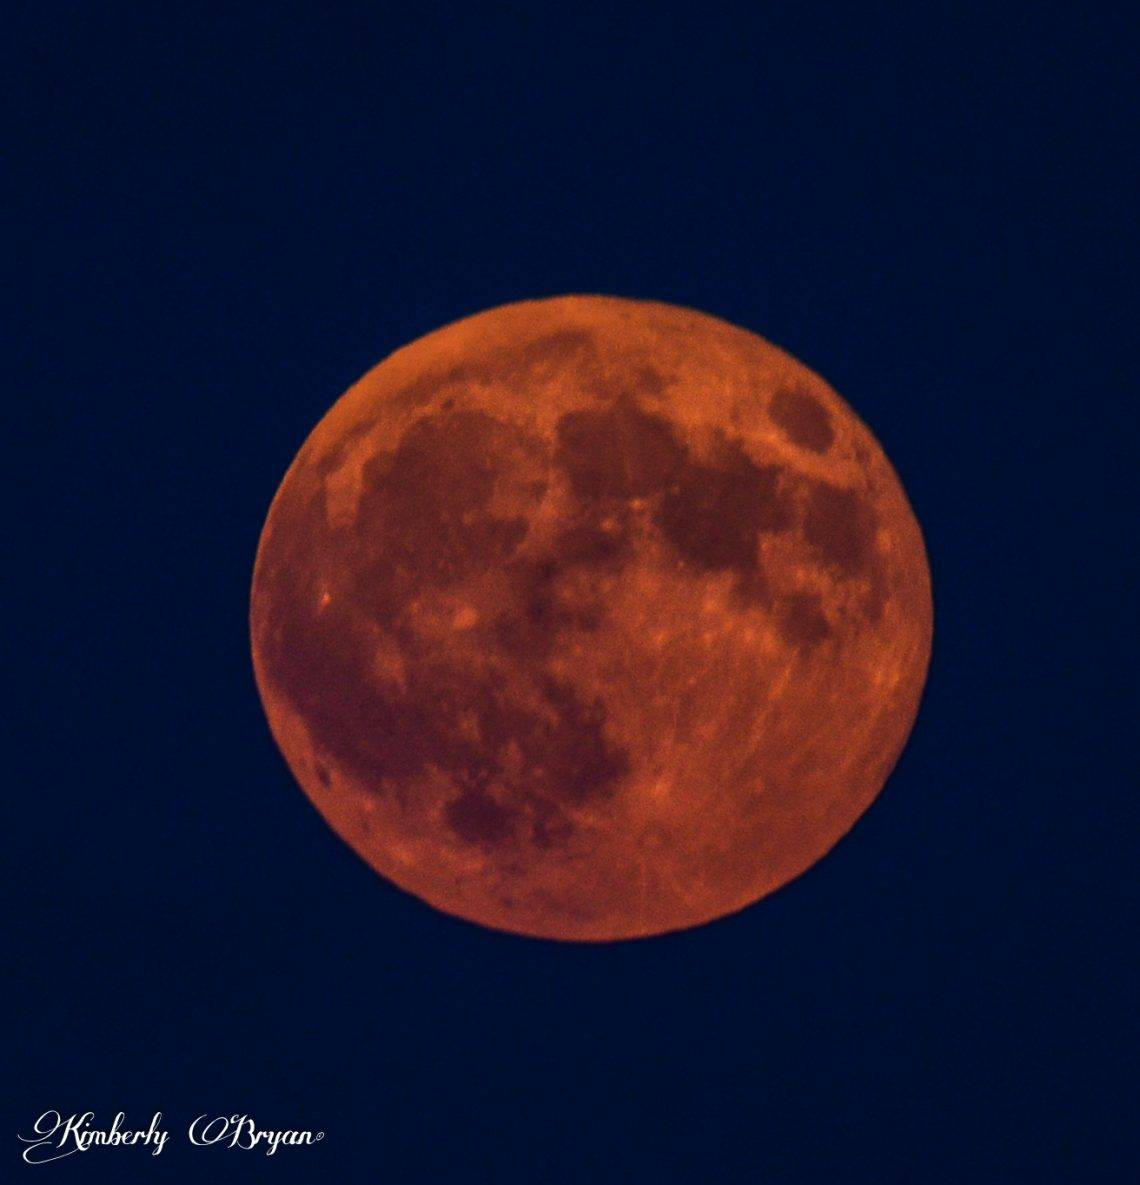 The Blood Moon July 27, 2018: Longest total Lunar Eclipse of the Century.